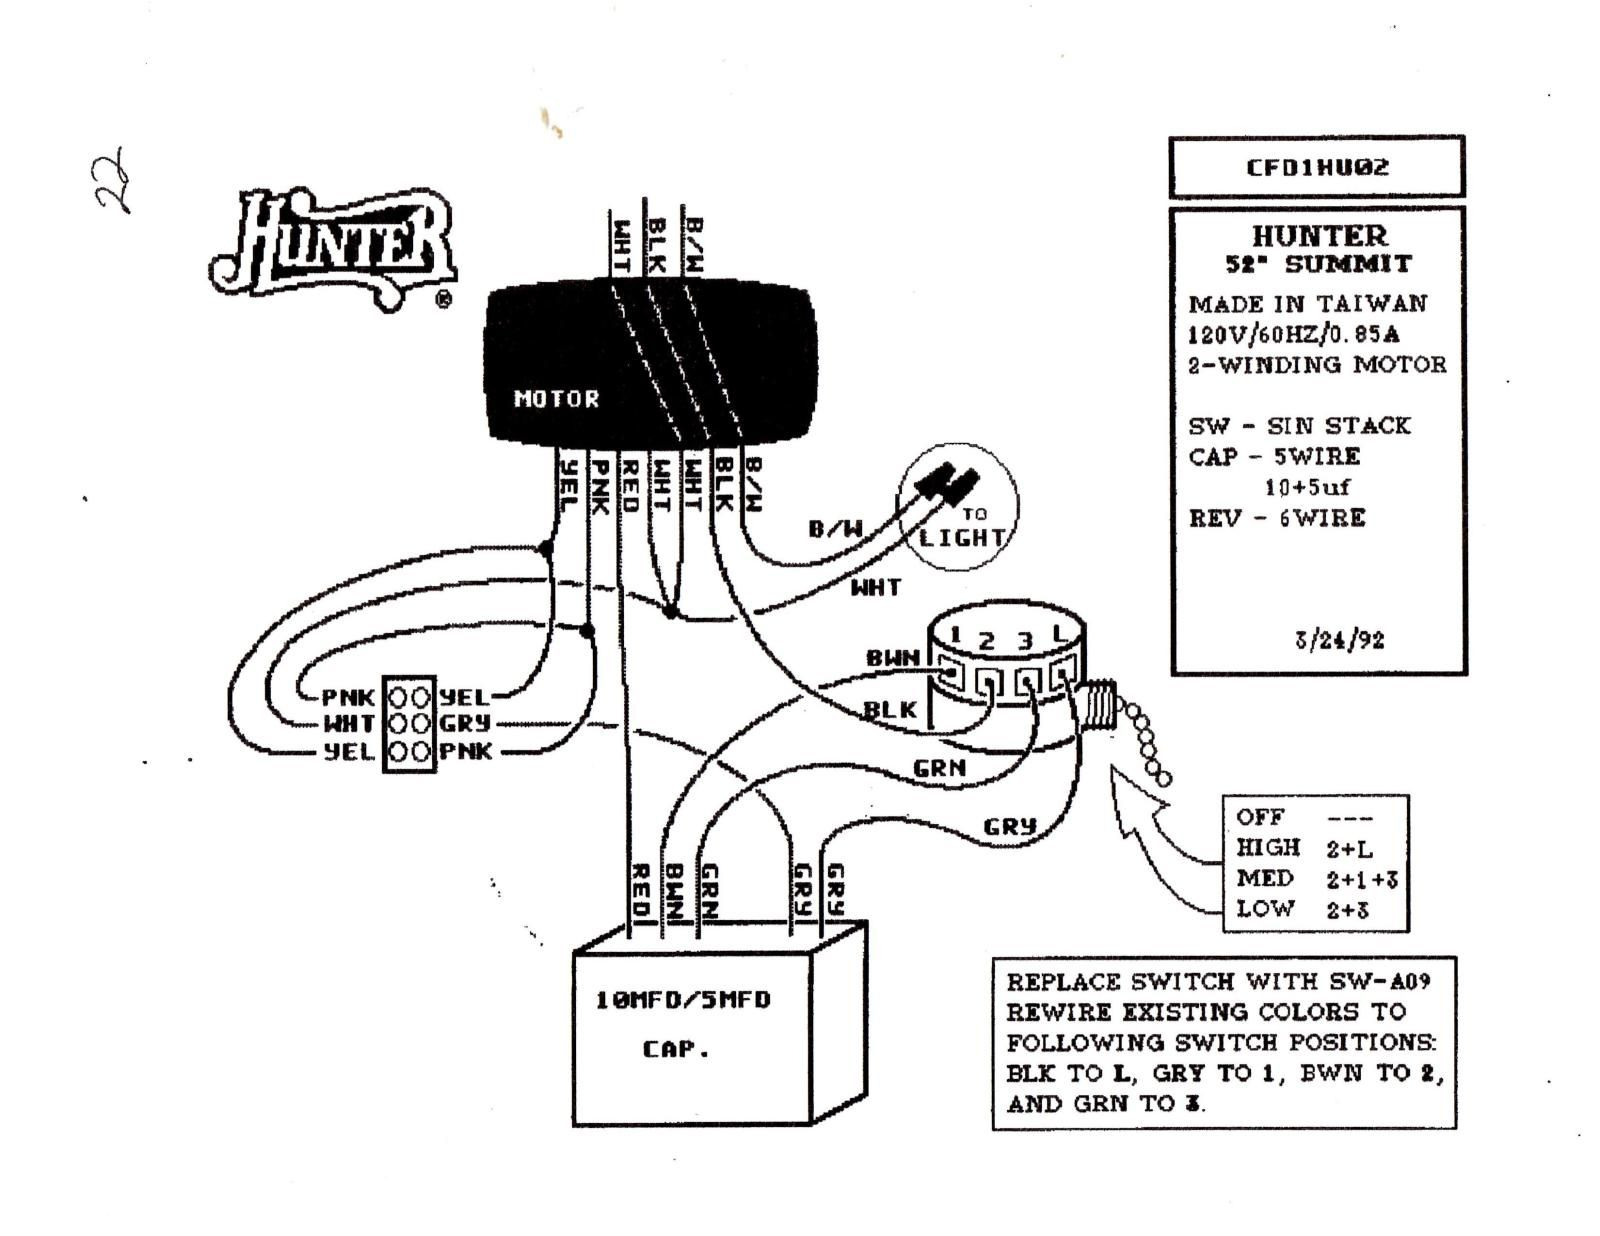 Fanimation Remote Control Wiring Diagram Basic Heat Pump